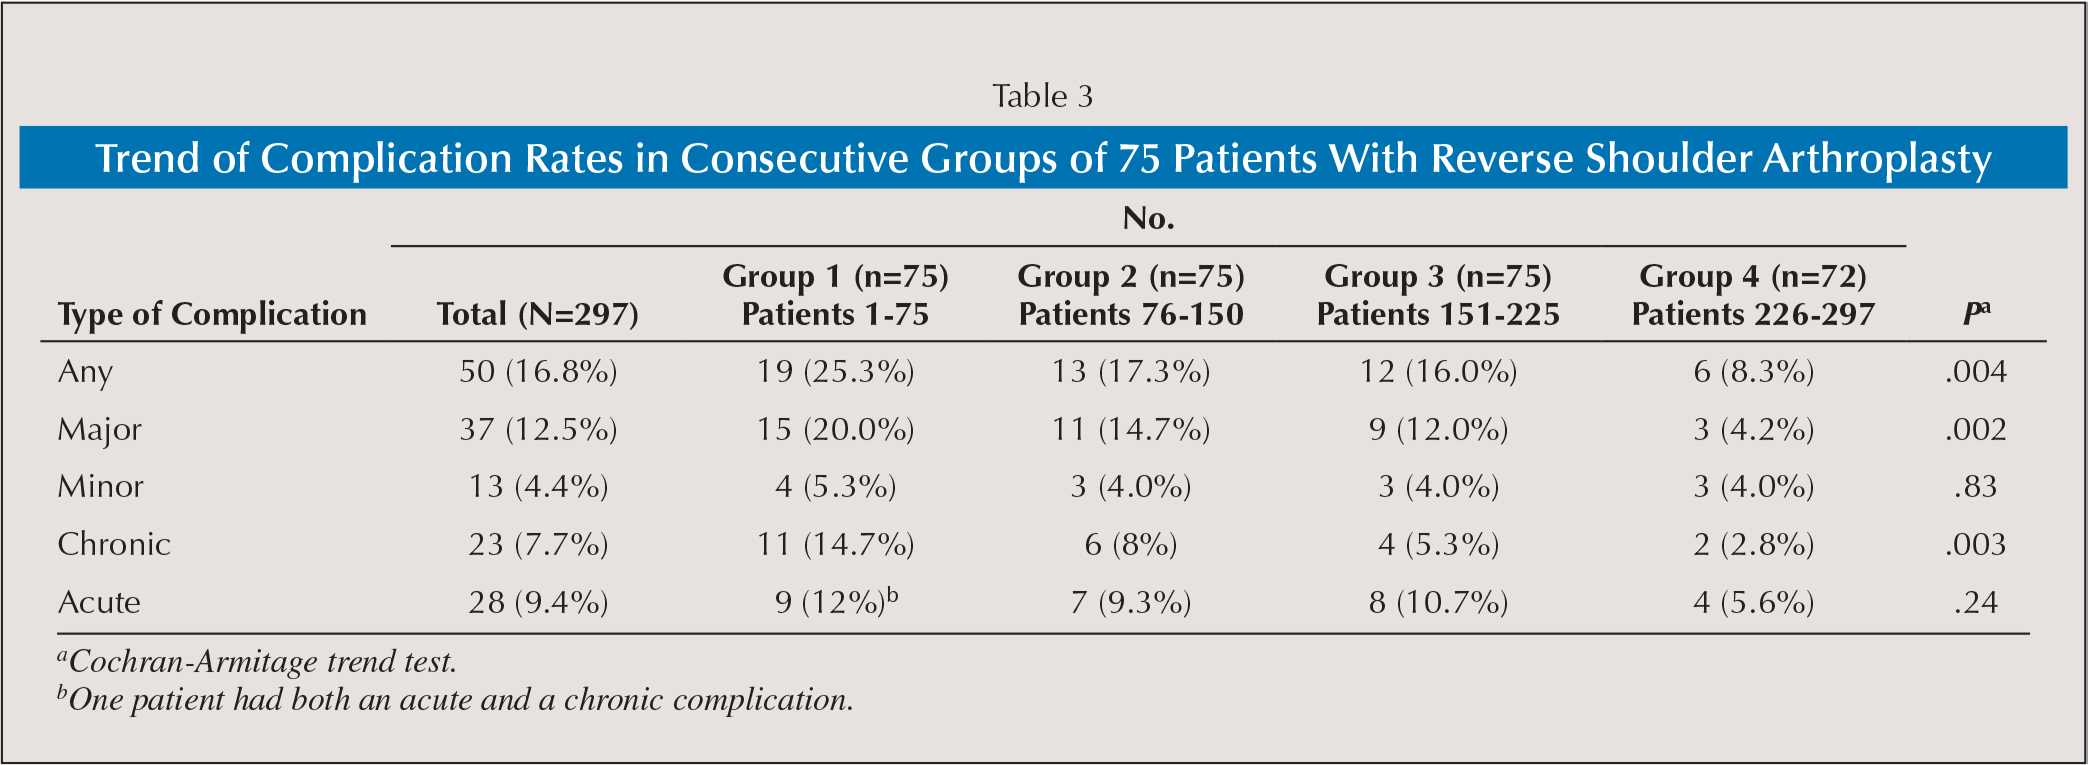 Trend of Complication Rates in Consecutive Groups of 75 Patients With Reverse Shoulder Arthroplasty